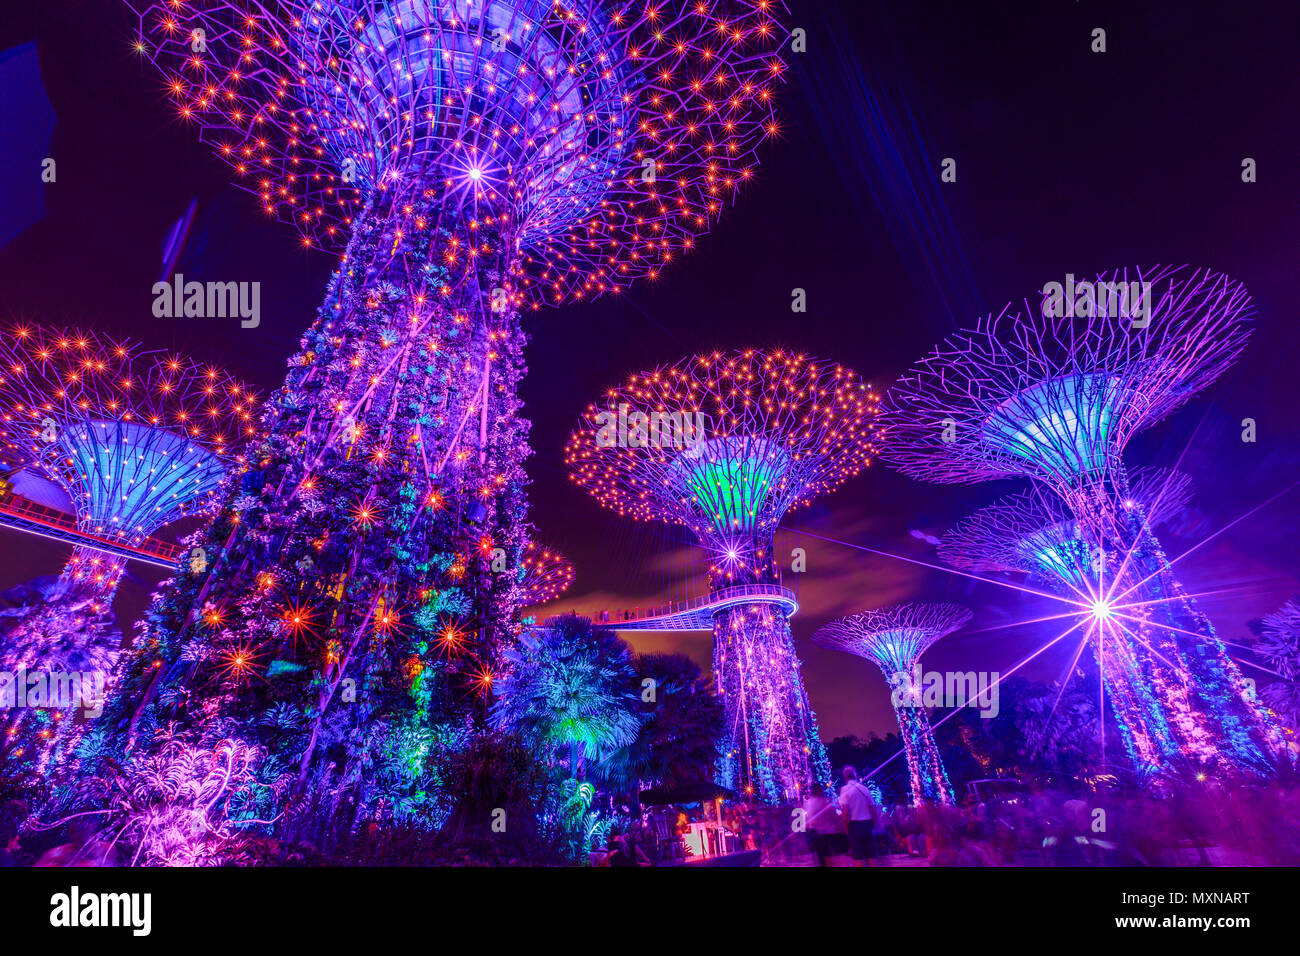 Singapore  April 29, 2018: Supertree Grove at Gardens by the Bay during Light Show with purple